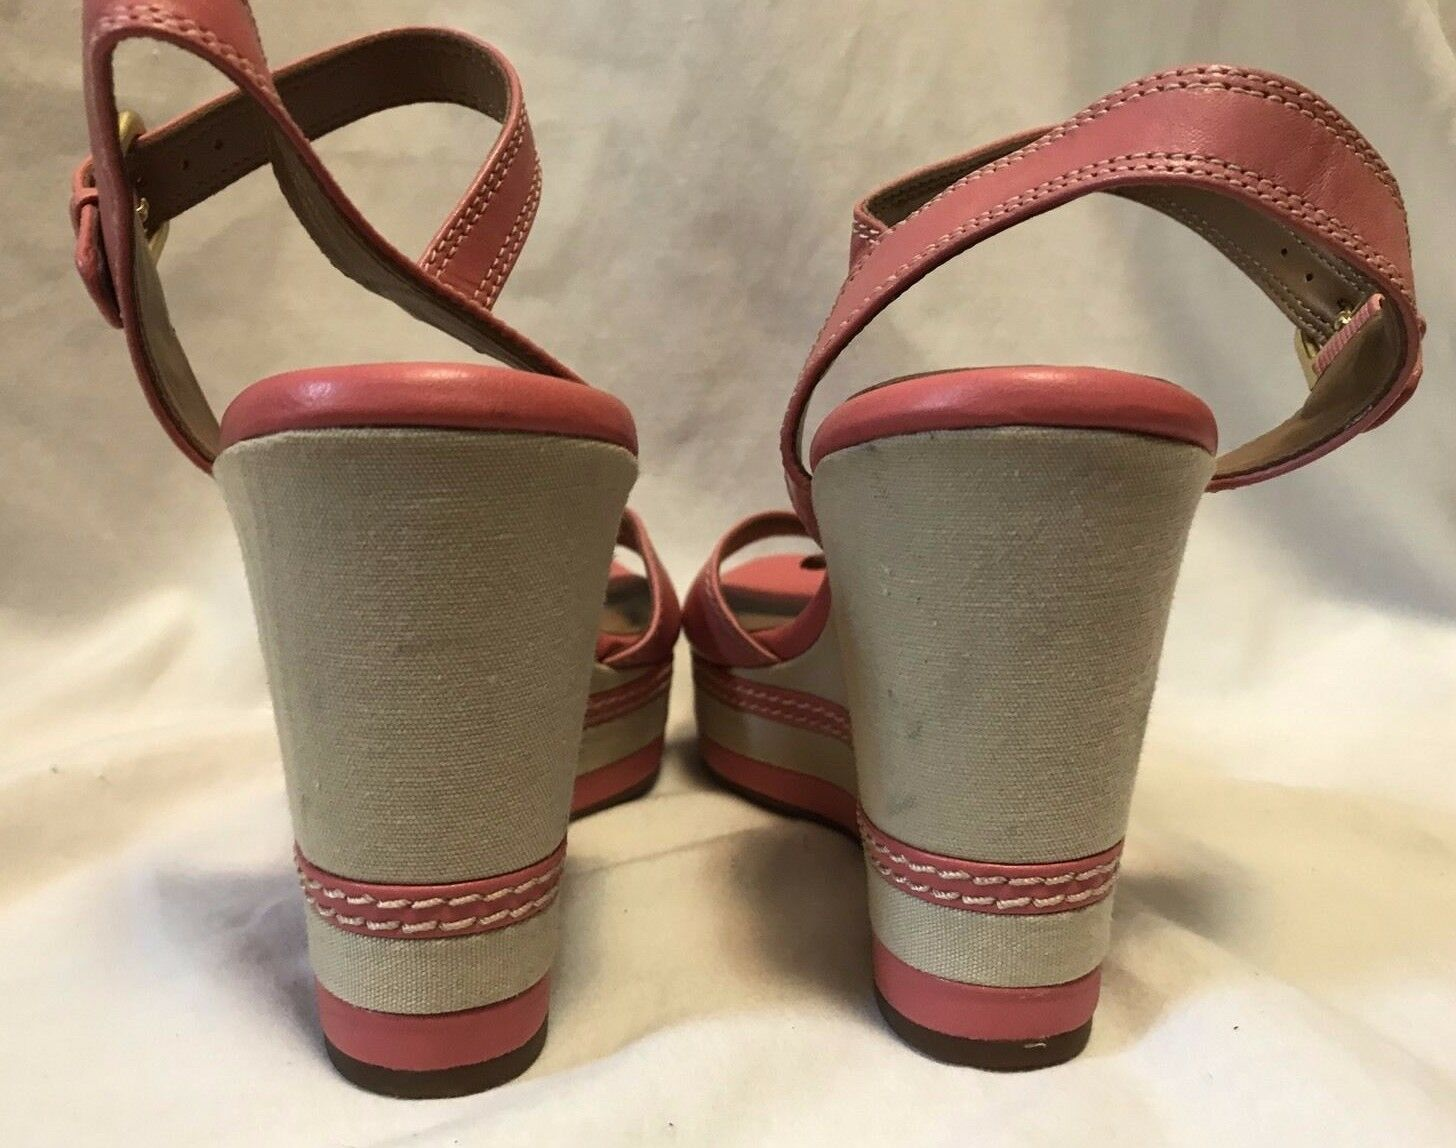 69e13b330af Clarks ZIA Wedges Sandals Women s 9M Pink Coral Buckles Canvas Heels Dress  Shoes